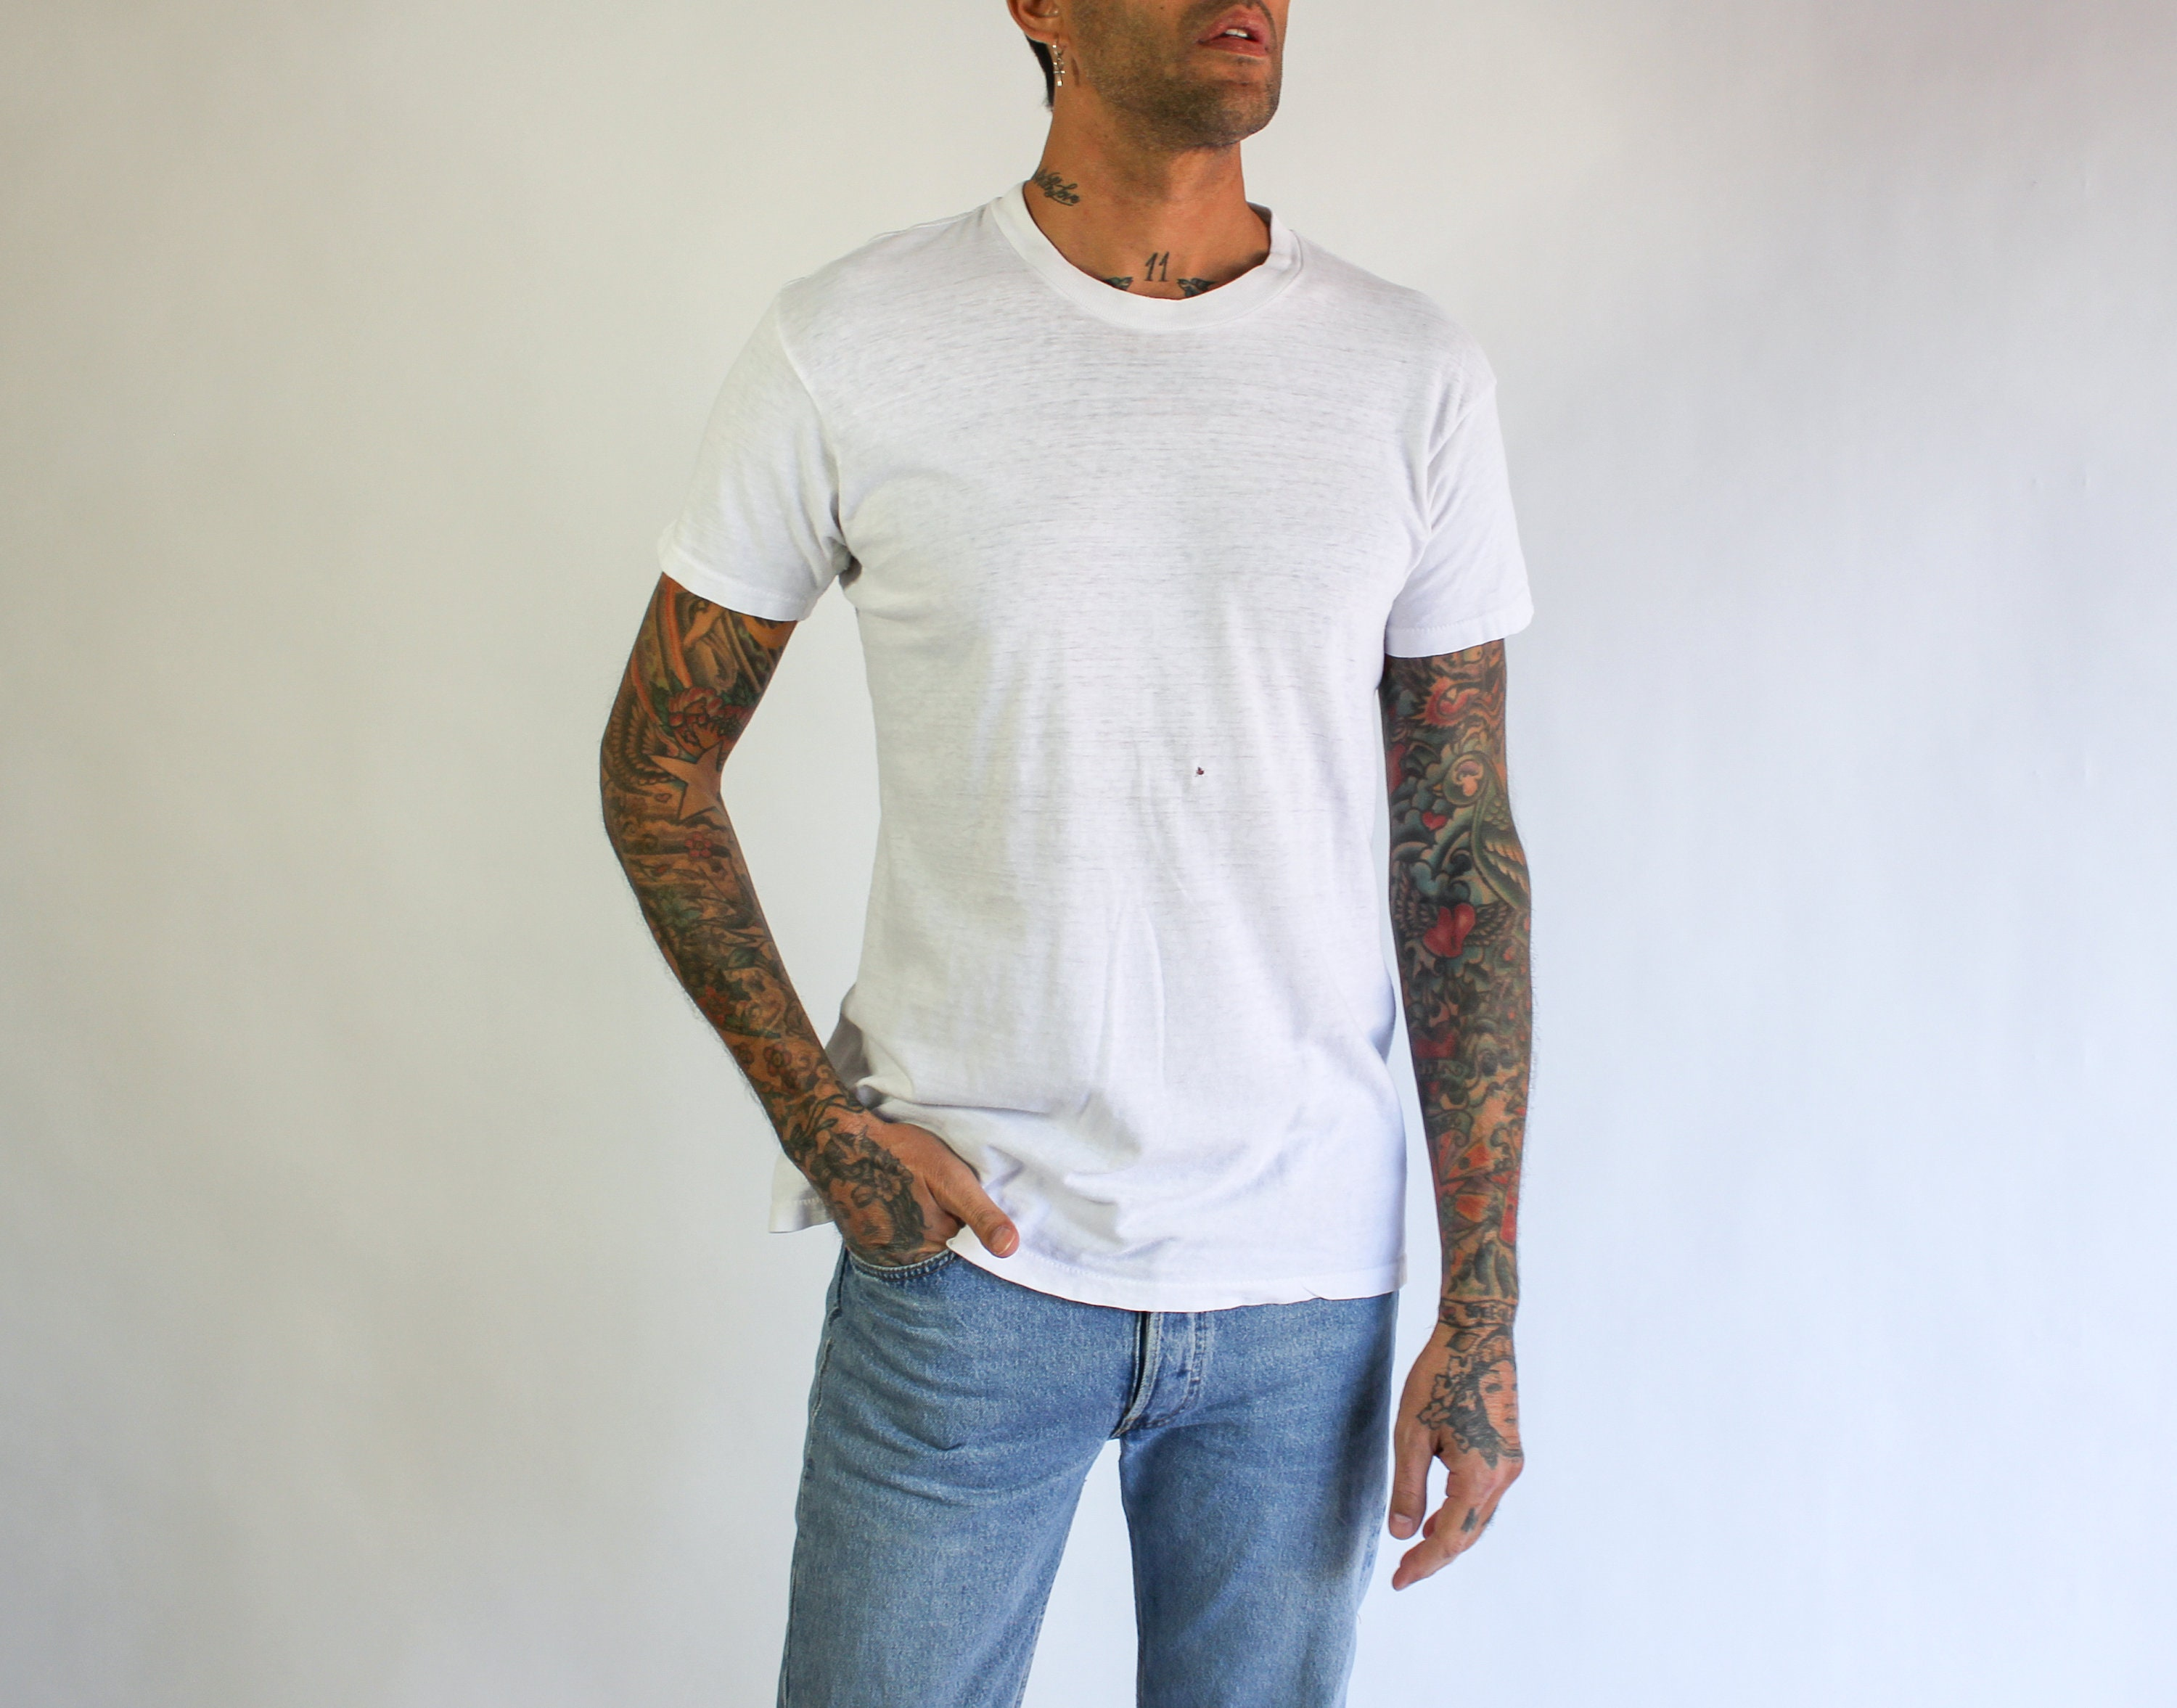 1970s Mens Shirt Styles – Vintage 70s Shirts for Guys Vintage 70S 80S Destroyed K Mart Blank Tee Shirt  Paper Thin, Single Stitch 1970S 1980S White $22.95 AT vintagedancer.com